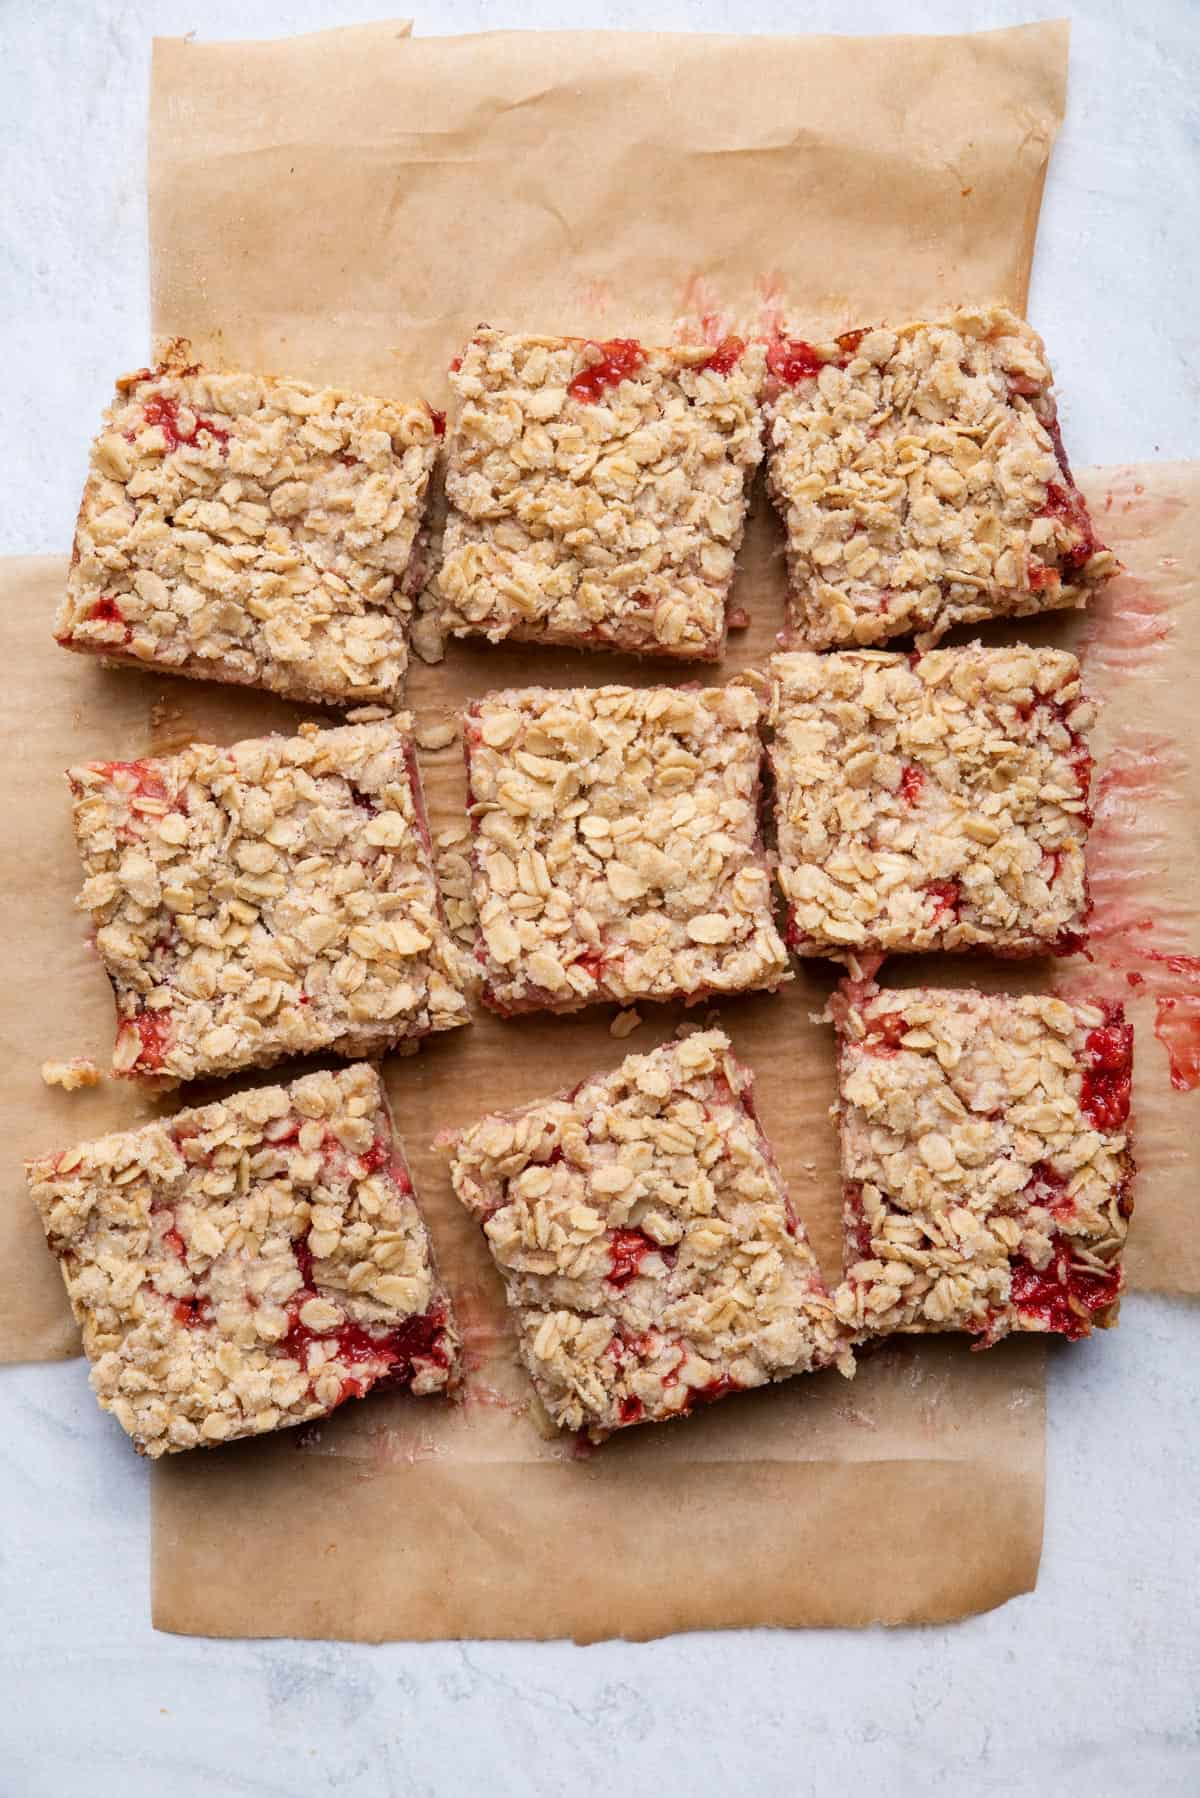 Strawberry oat bars after baking on parchment paper cut into 9 bars